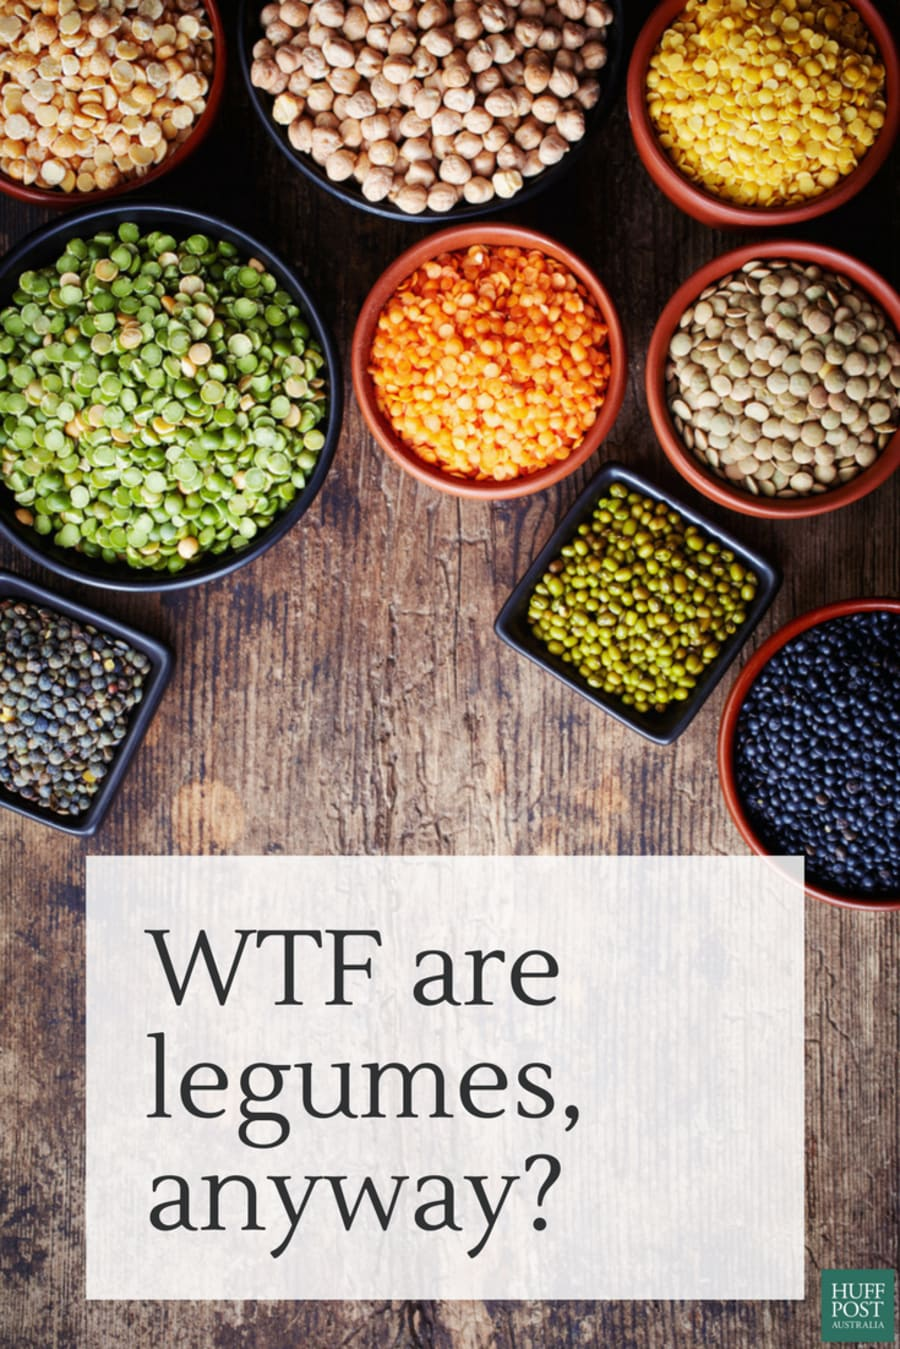 We Know They're Healthy, But WTF Is A Legume, Really?